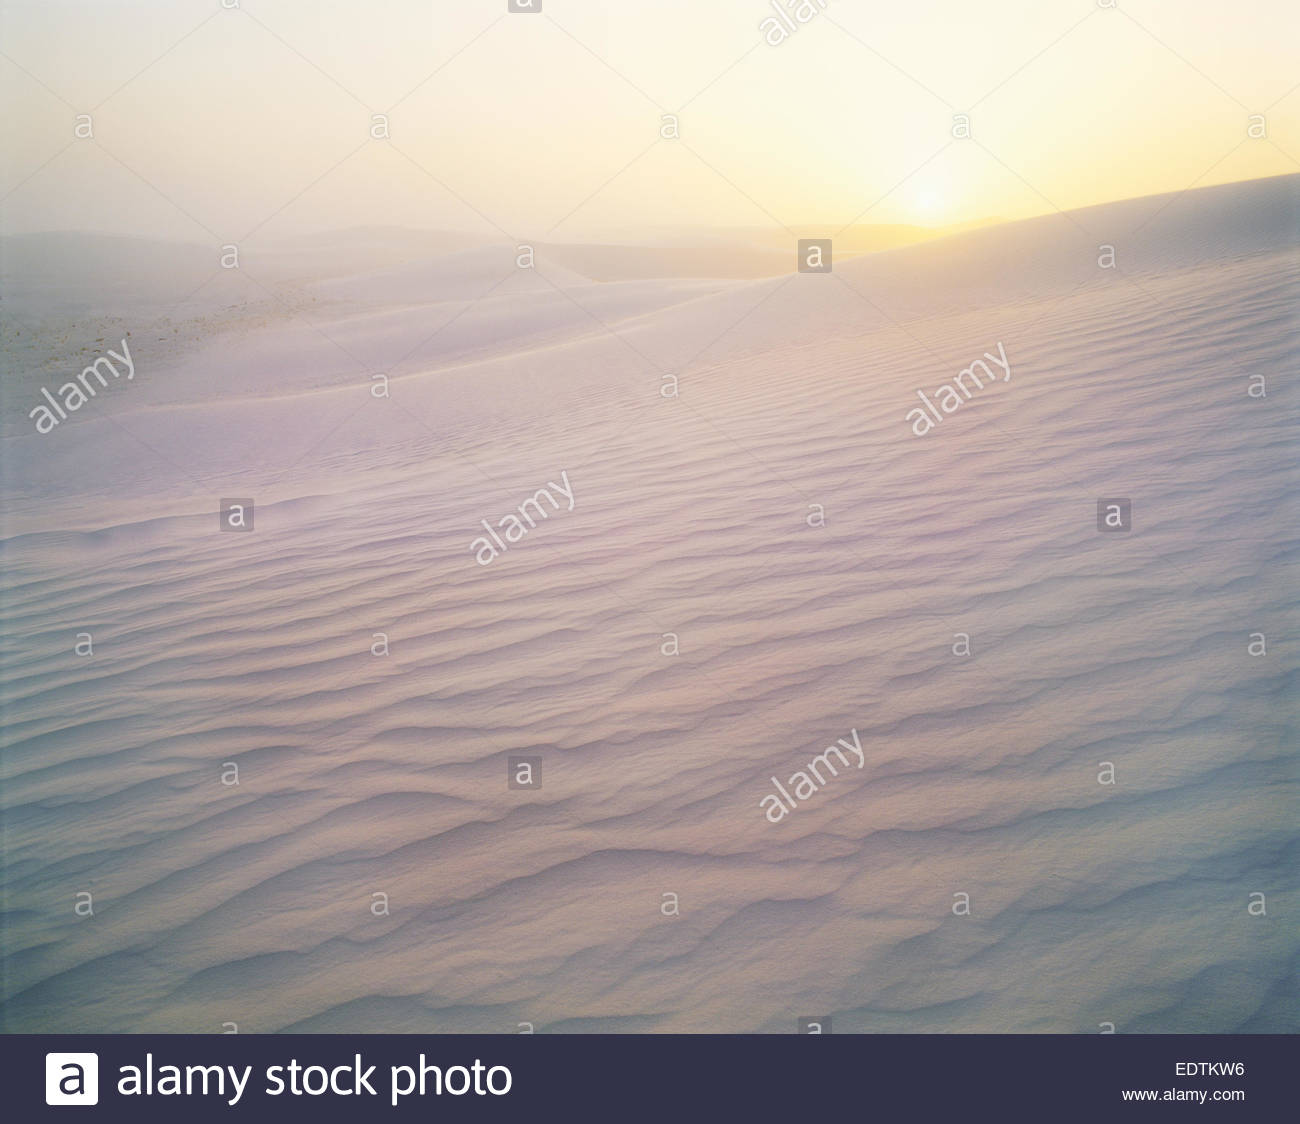 Des vents forts sur les dunes de gypse au lever du soleil. White Sands National Monument, Nouveau-Mexique. Photo Stock